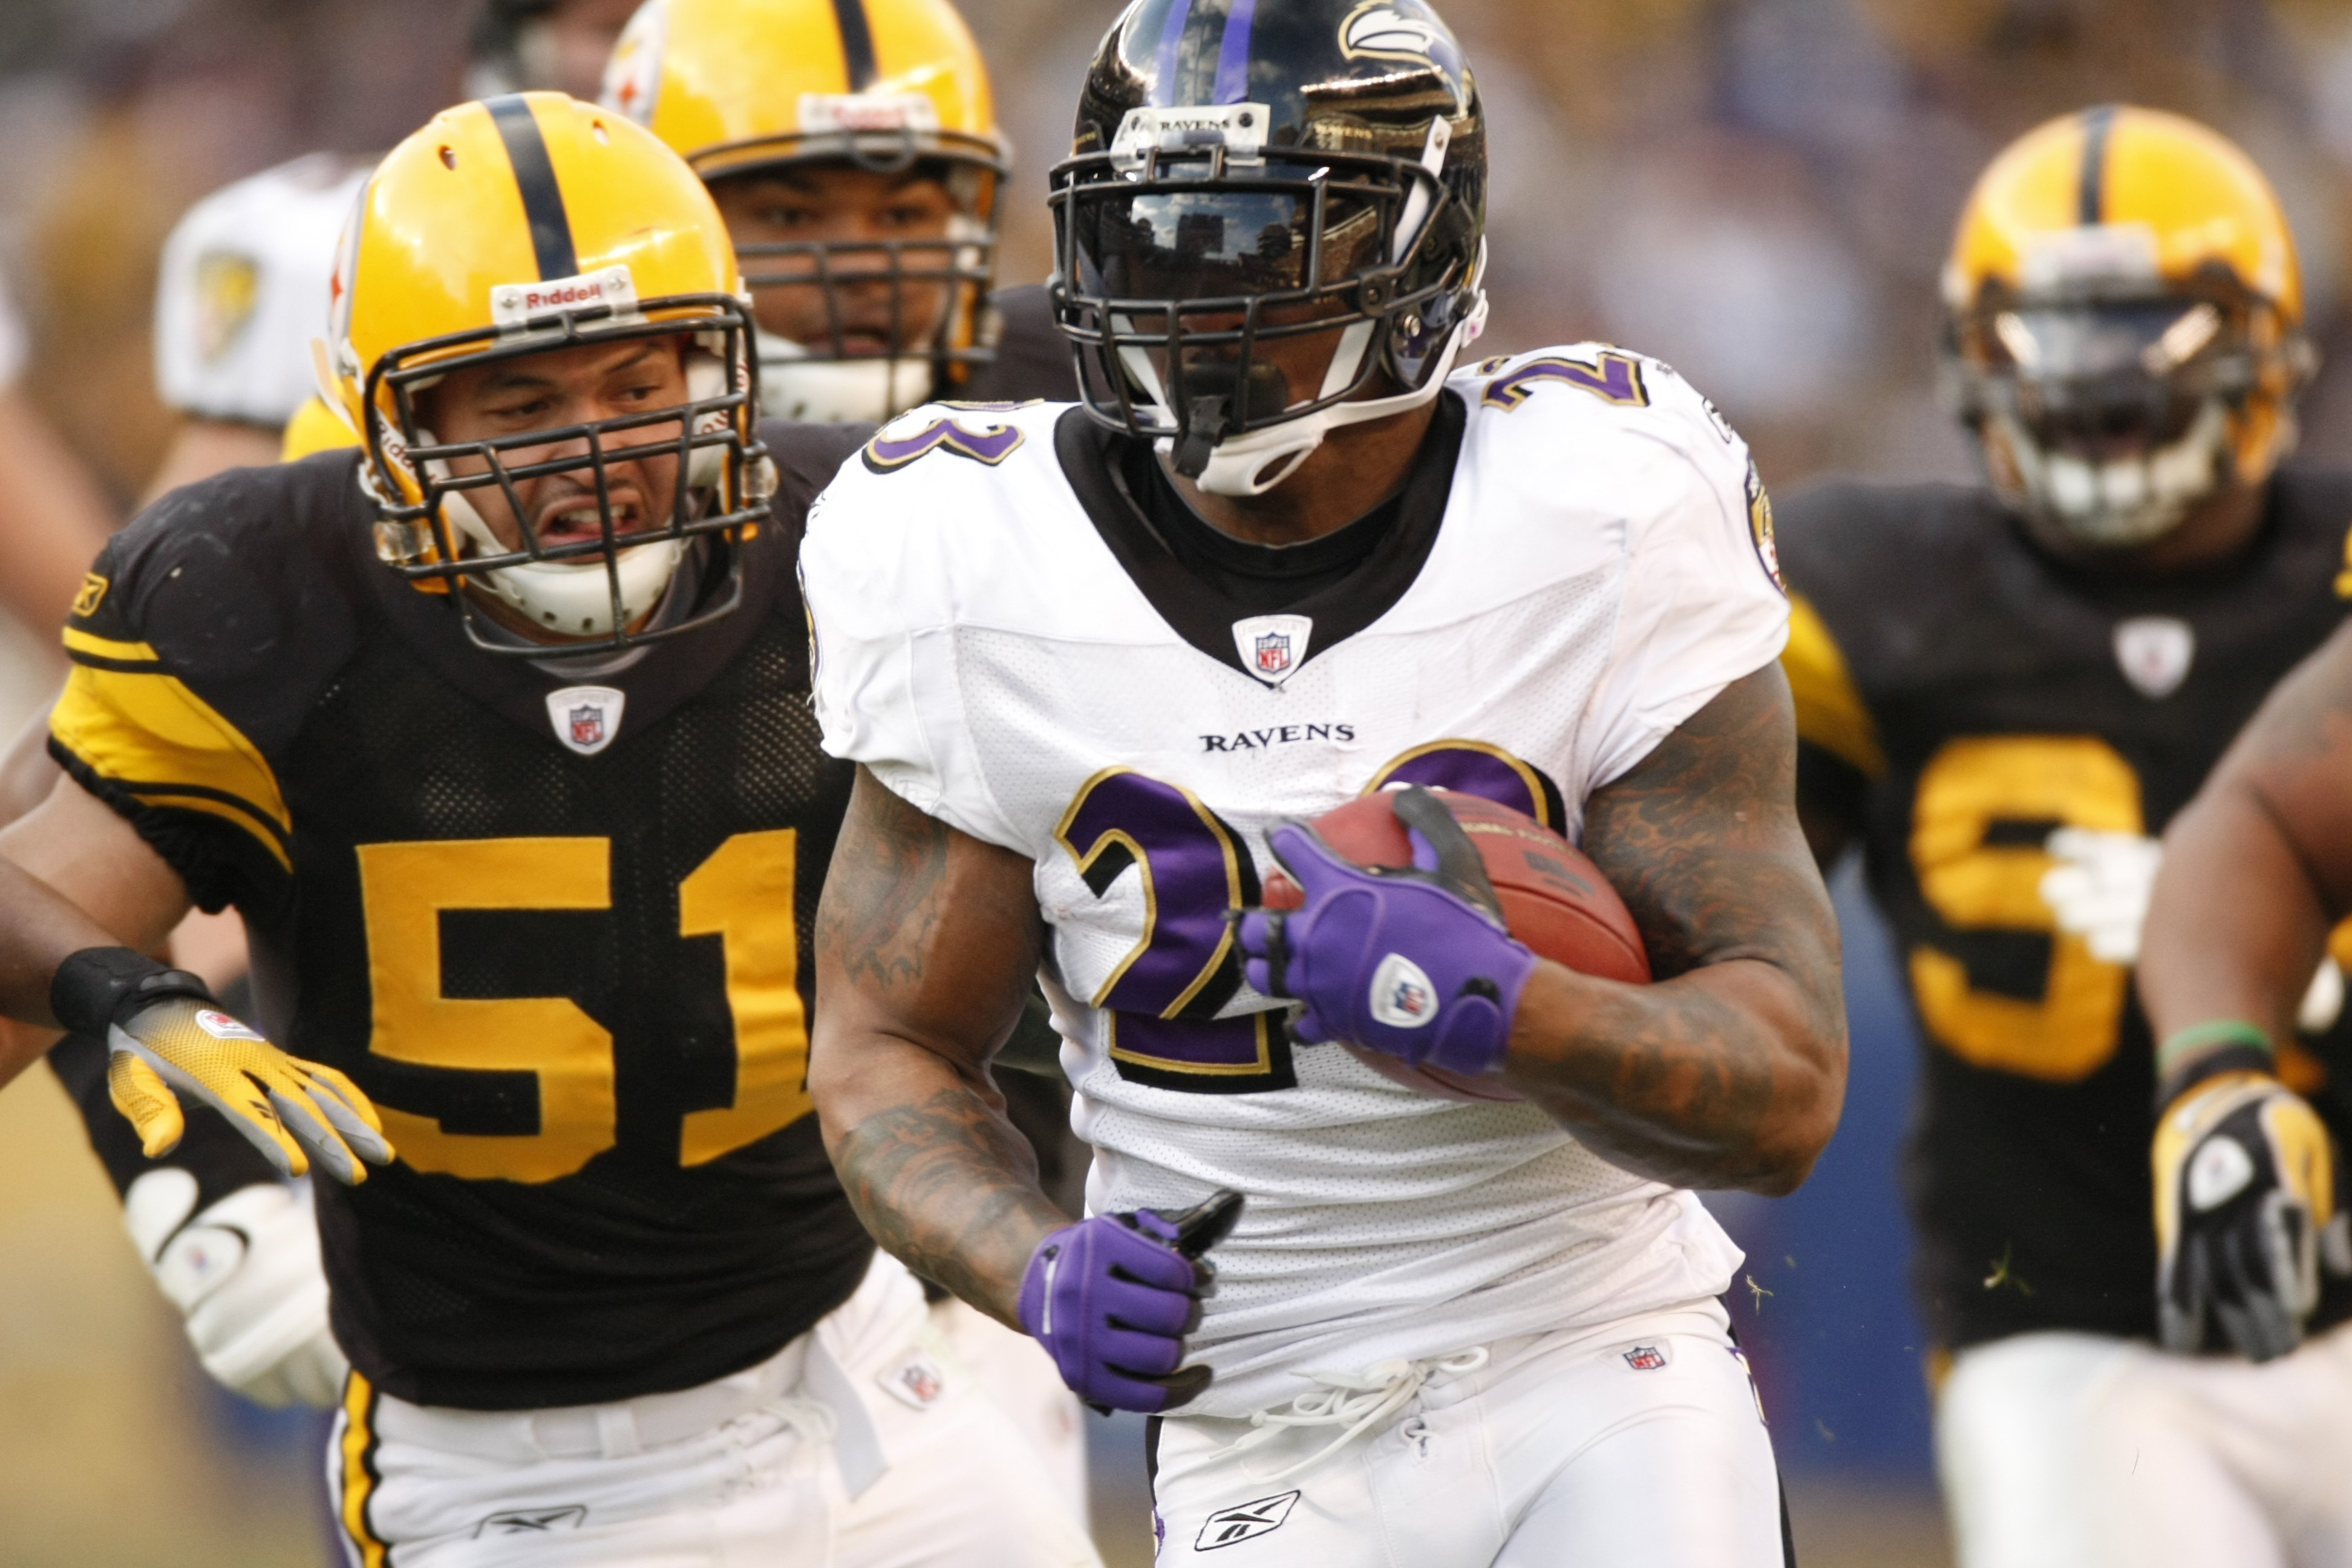 PITTSBURGH - DECEMBER 27:  Willis McGahee #23 of the Baltimore Ravens carries the ball against James Farrior #51 of the Pittsburgh Steelers on December 27, 2009 at Heinz Field in Pittsburgh, Pennsylvania. (Photo by Gregory Shamus/Getty Images)